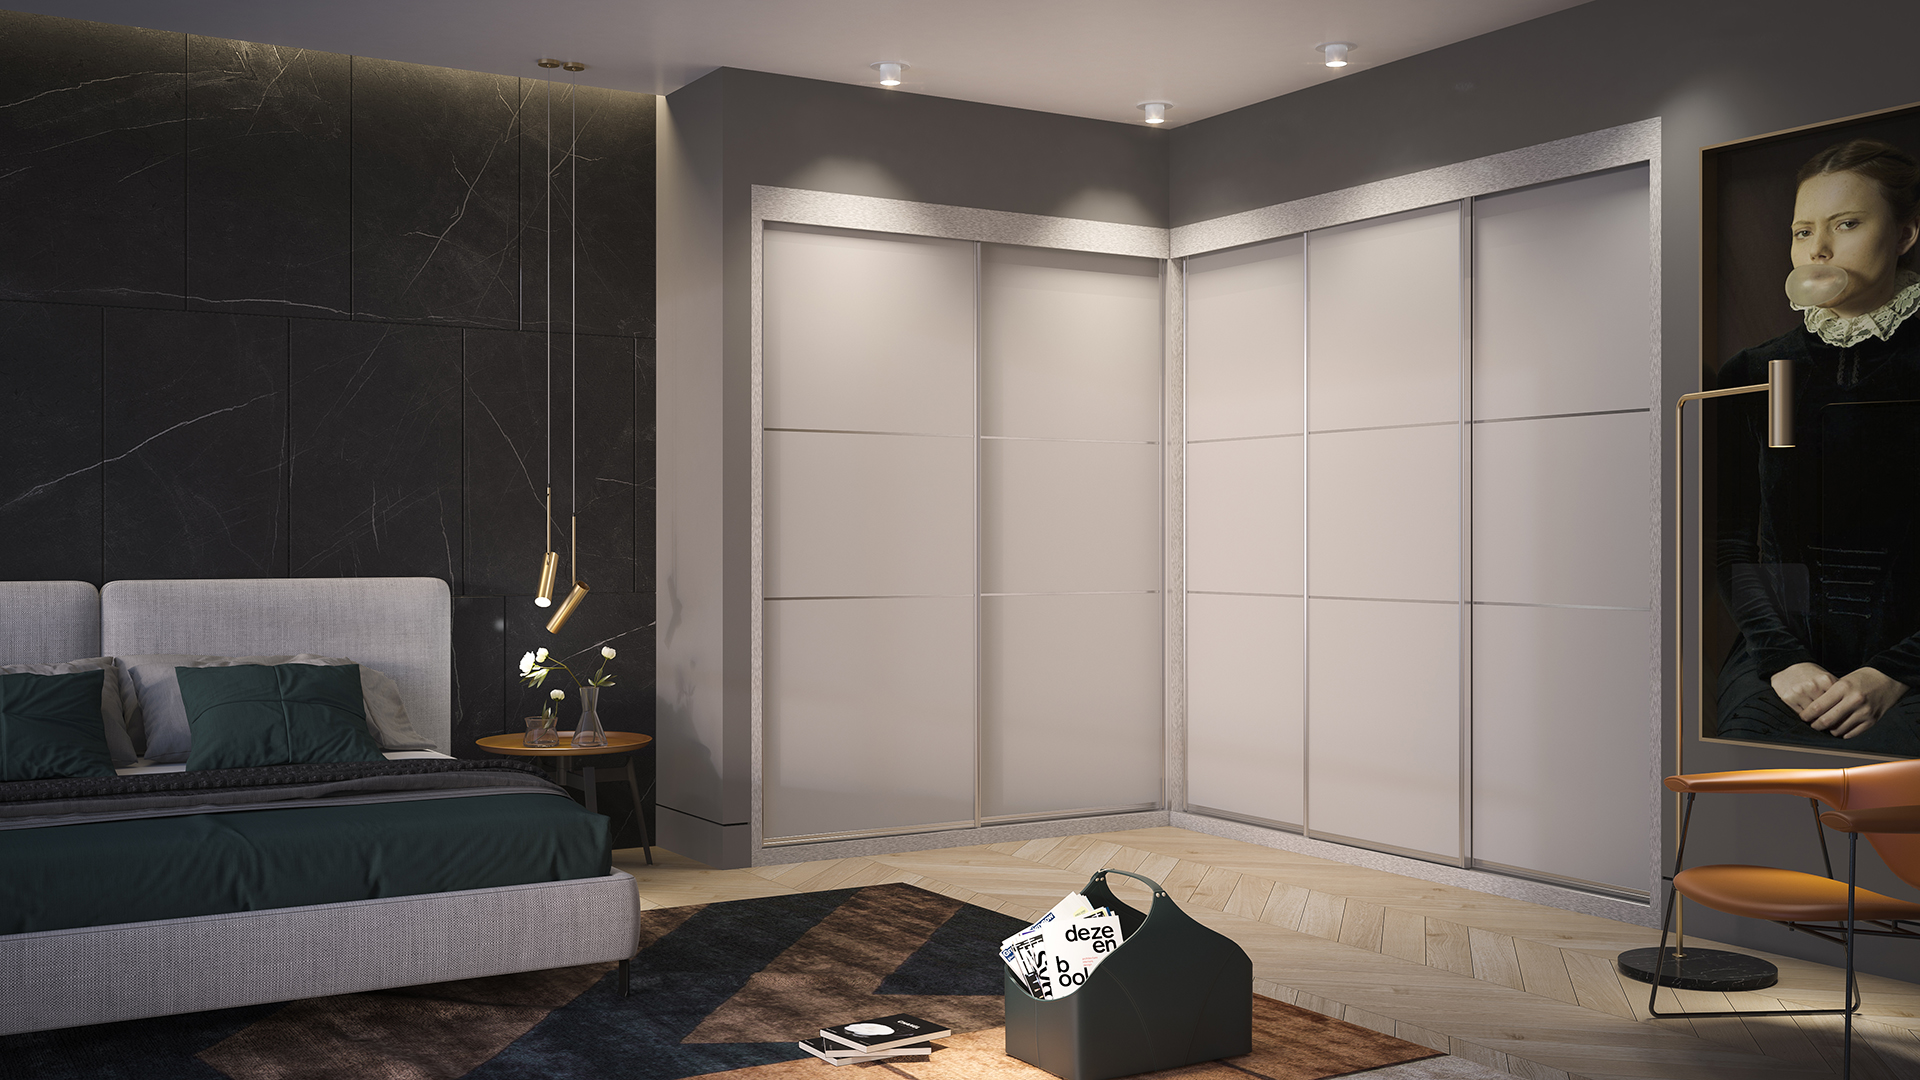 Maayan-Golan_Architectural-Visualization_product-visualization_AGAM-cloests_sliding-door-corner-closet_08